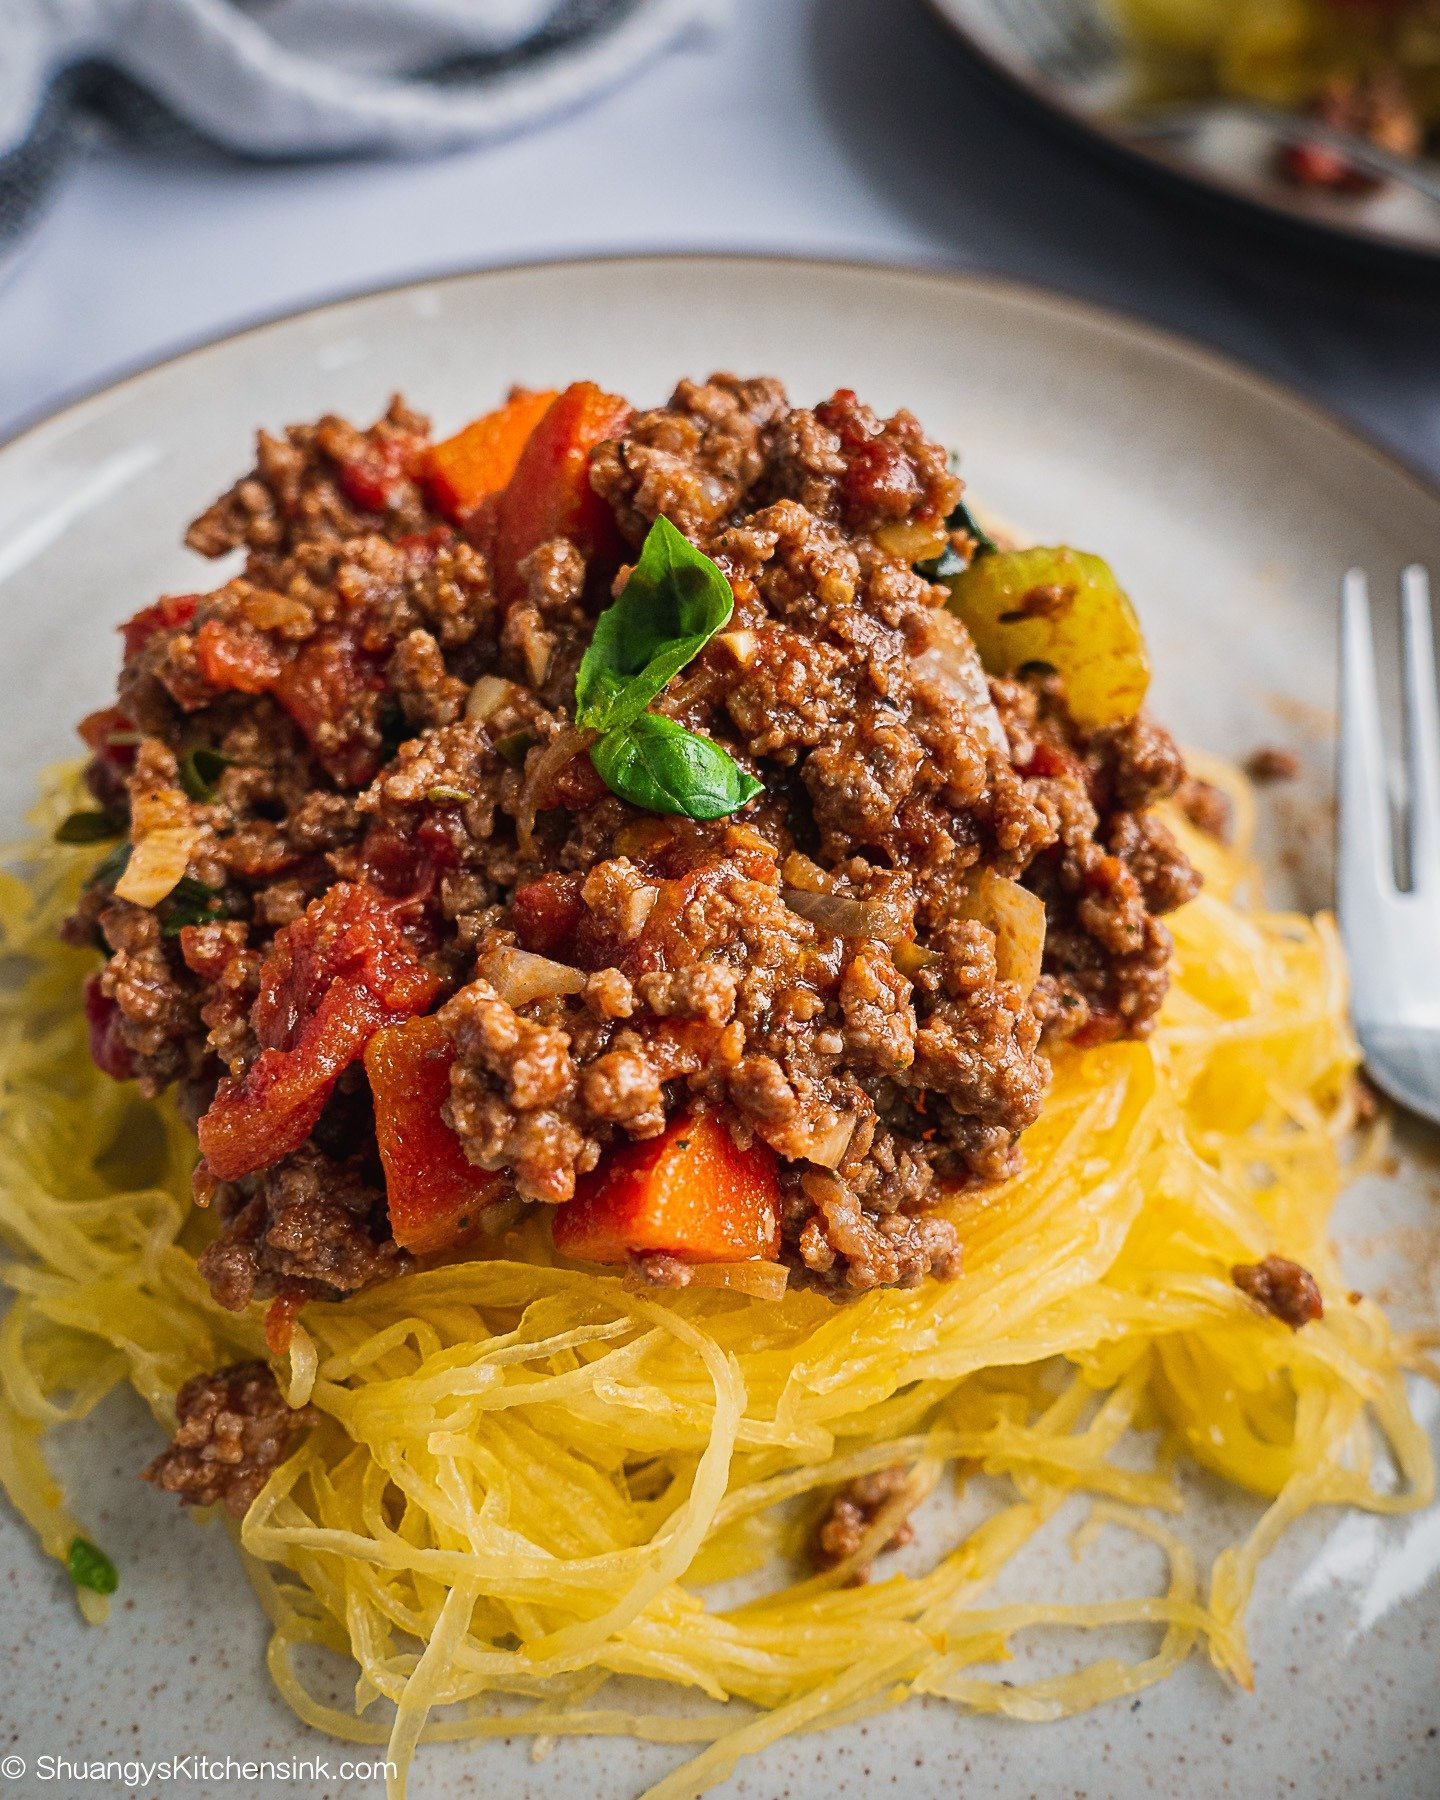 A plate of spaghetti squash topped with bolognese sauce and fresh basil.